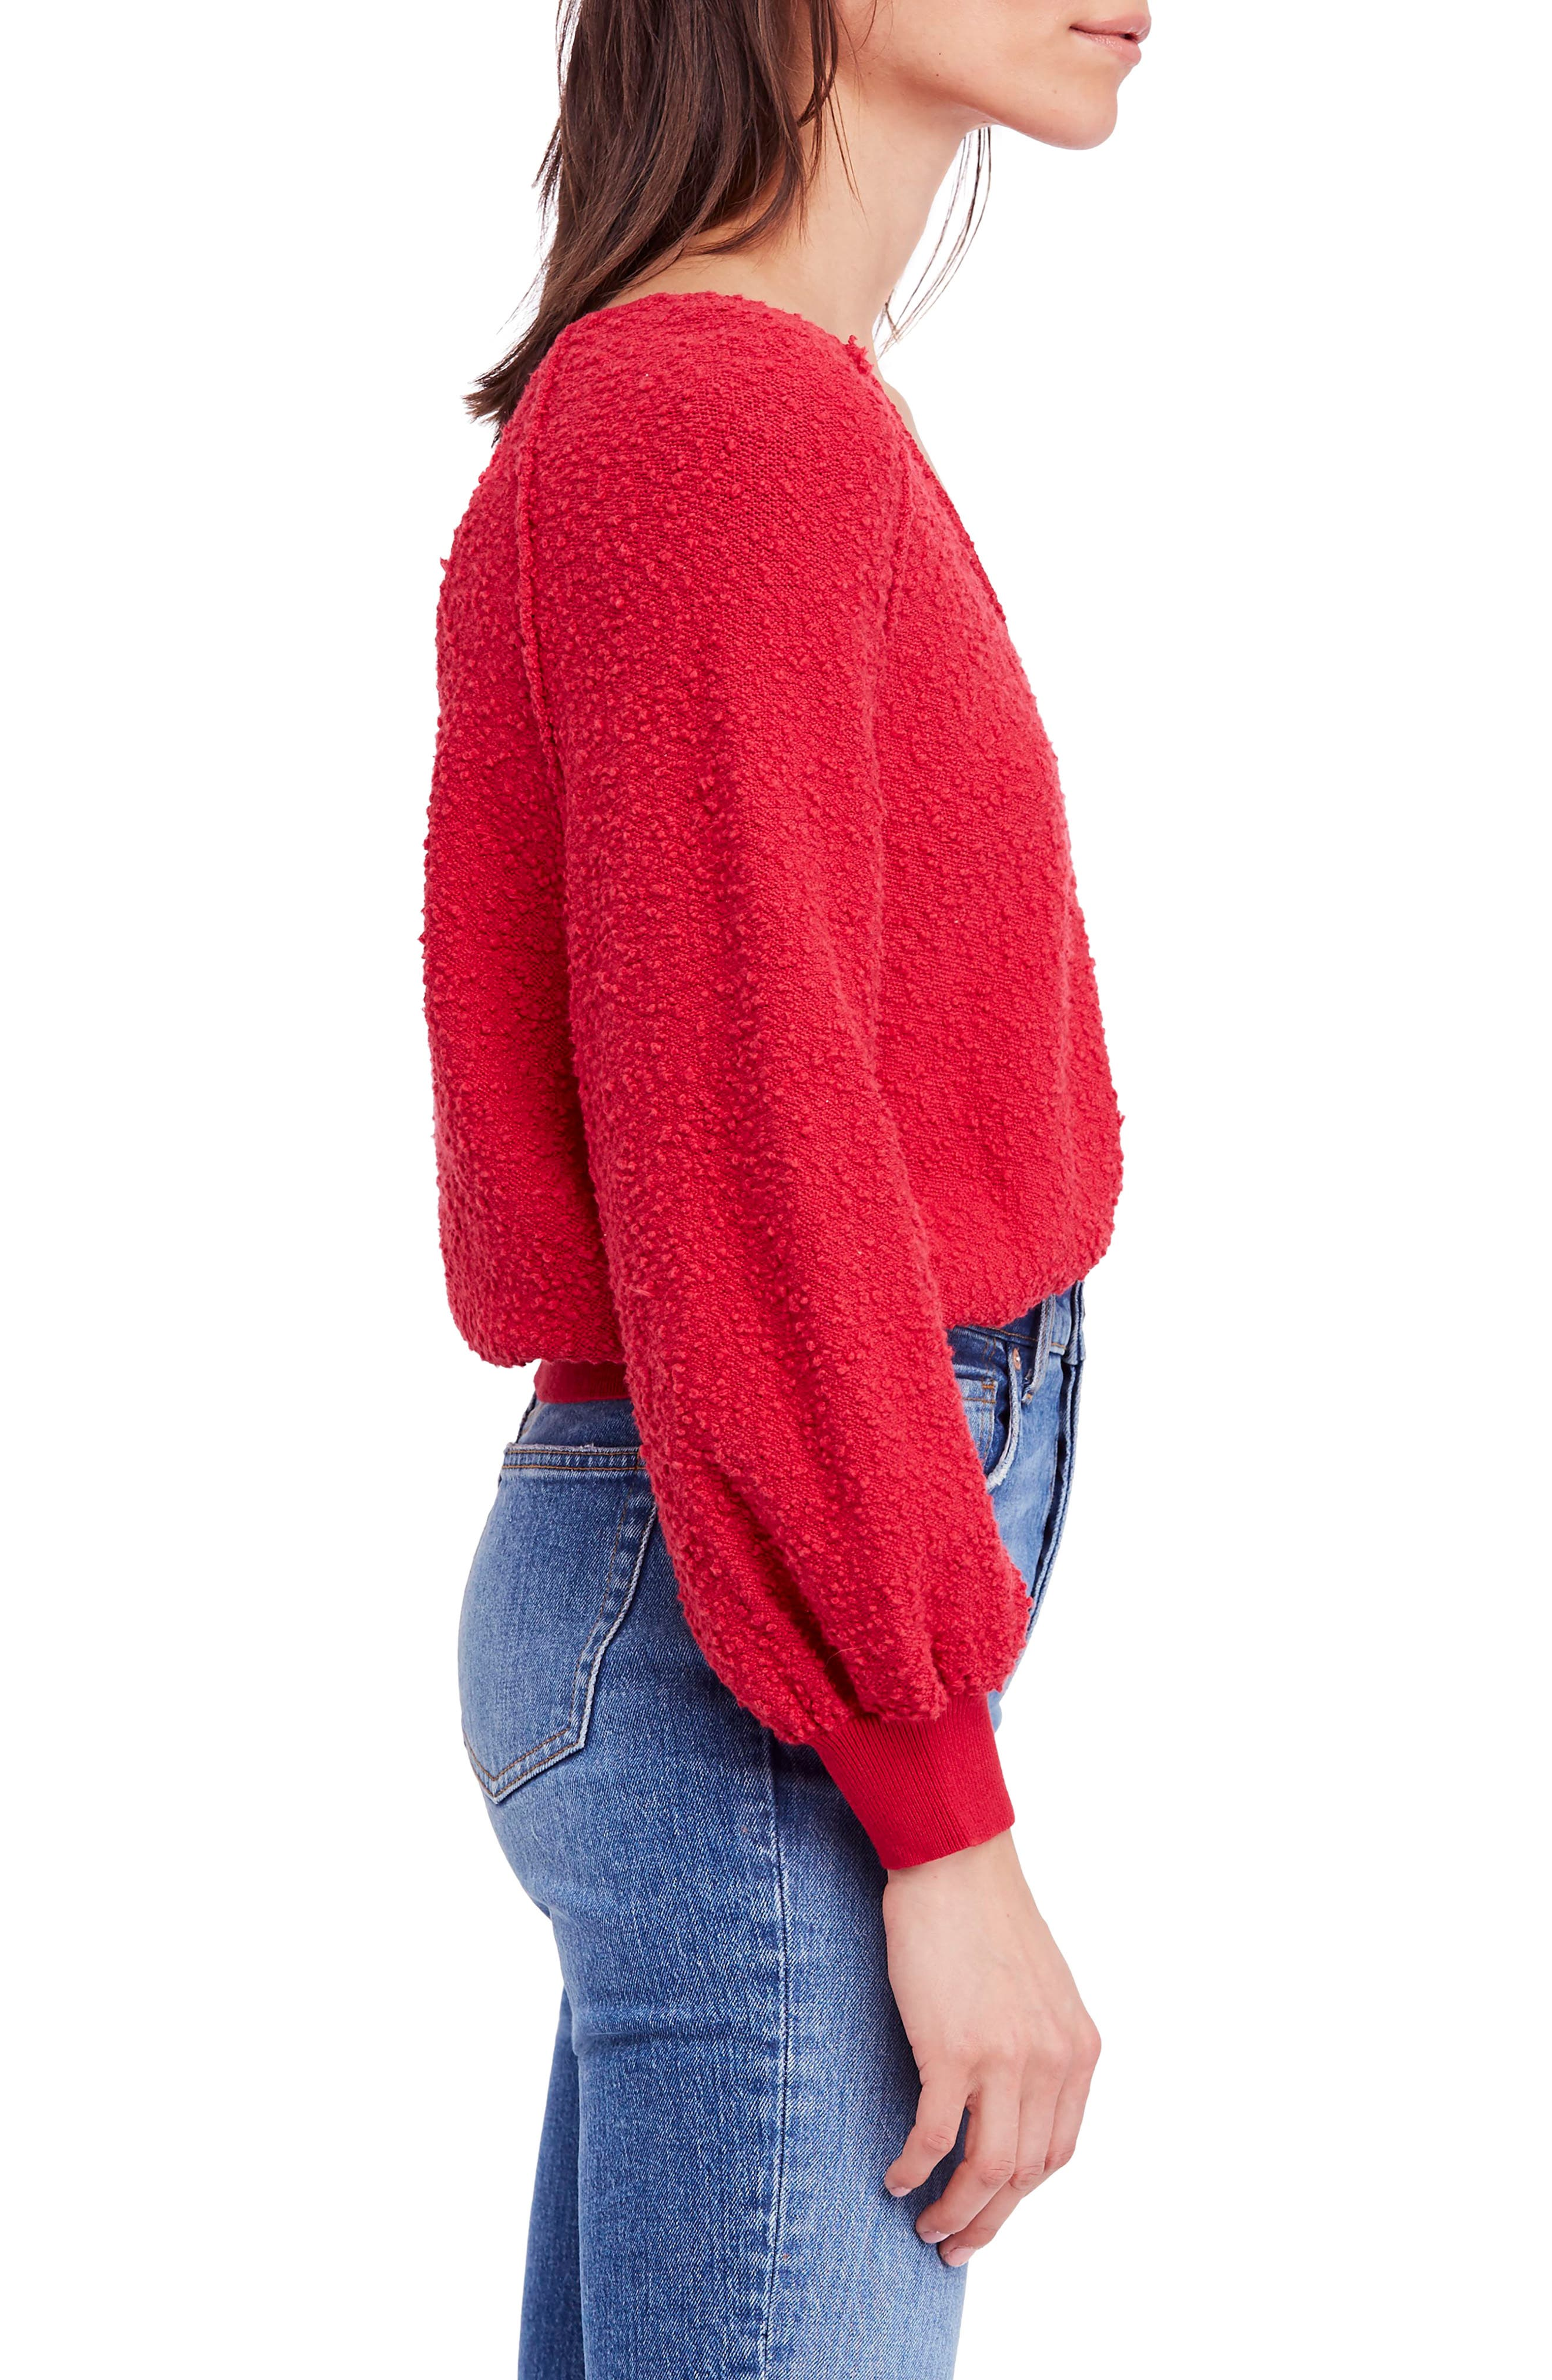 Found My Friend Sweater,                             Alternate thumbnail 3, color,                             Red